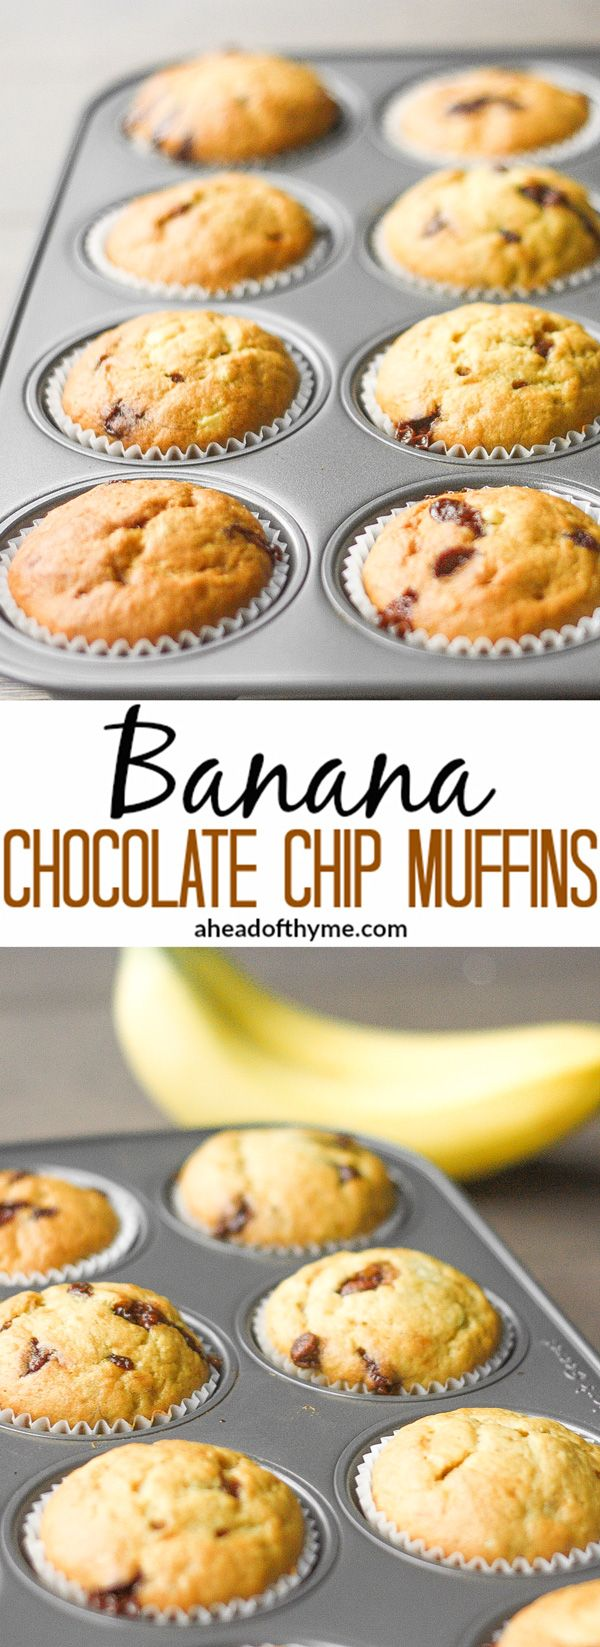 Banana Chocolate Chip Muffins: There is no better combination than banana and chocolate! These muffins make the perfect breakfast, snack or dessert | aheadofthyme.com via @aheadofthyme